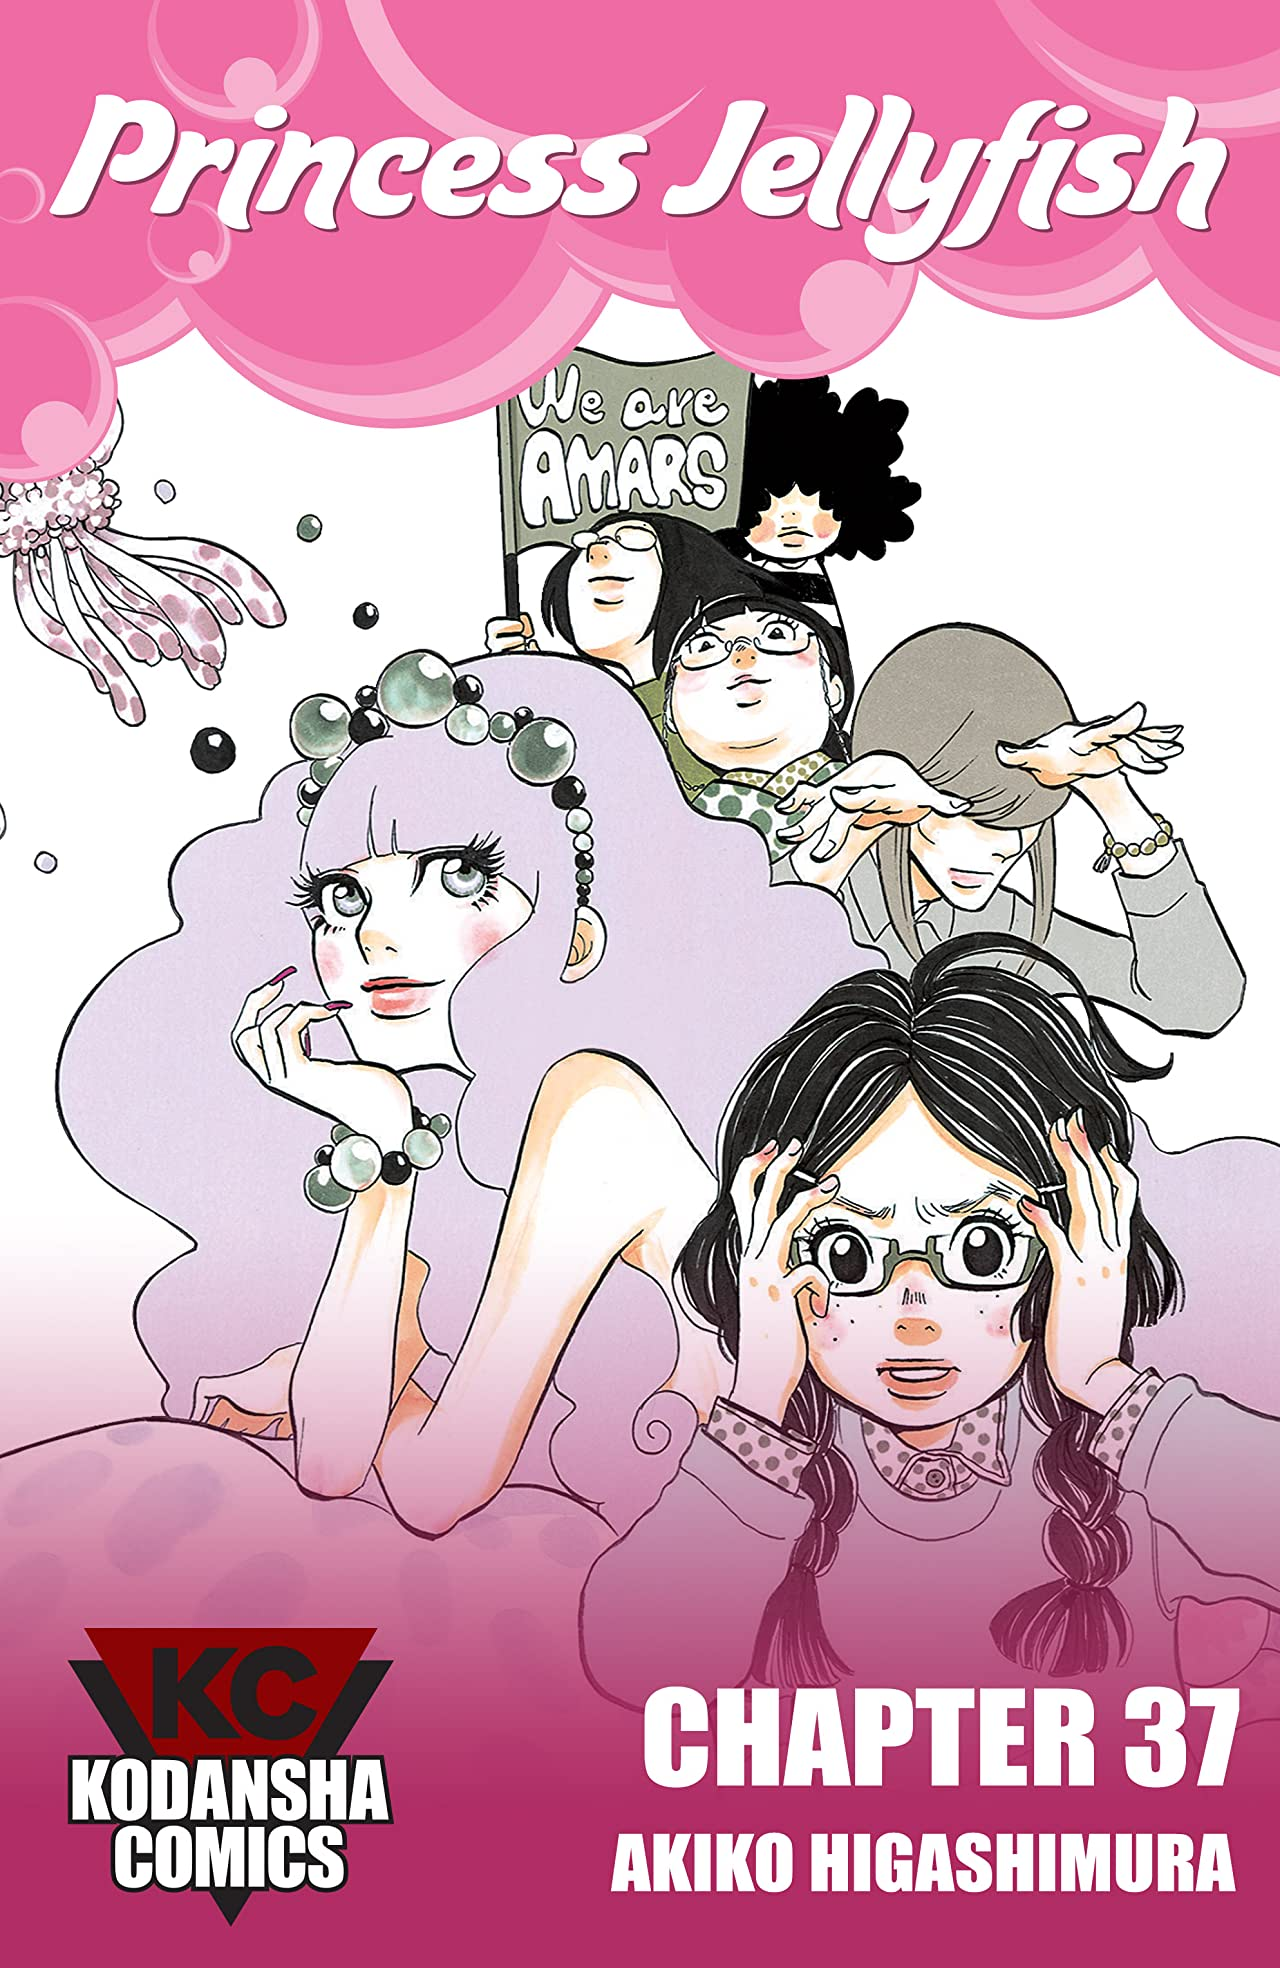 Princess Jellyfish #37